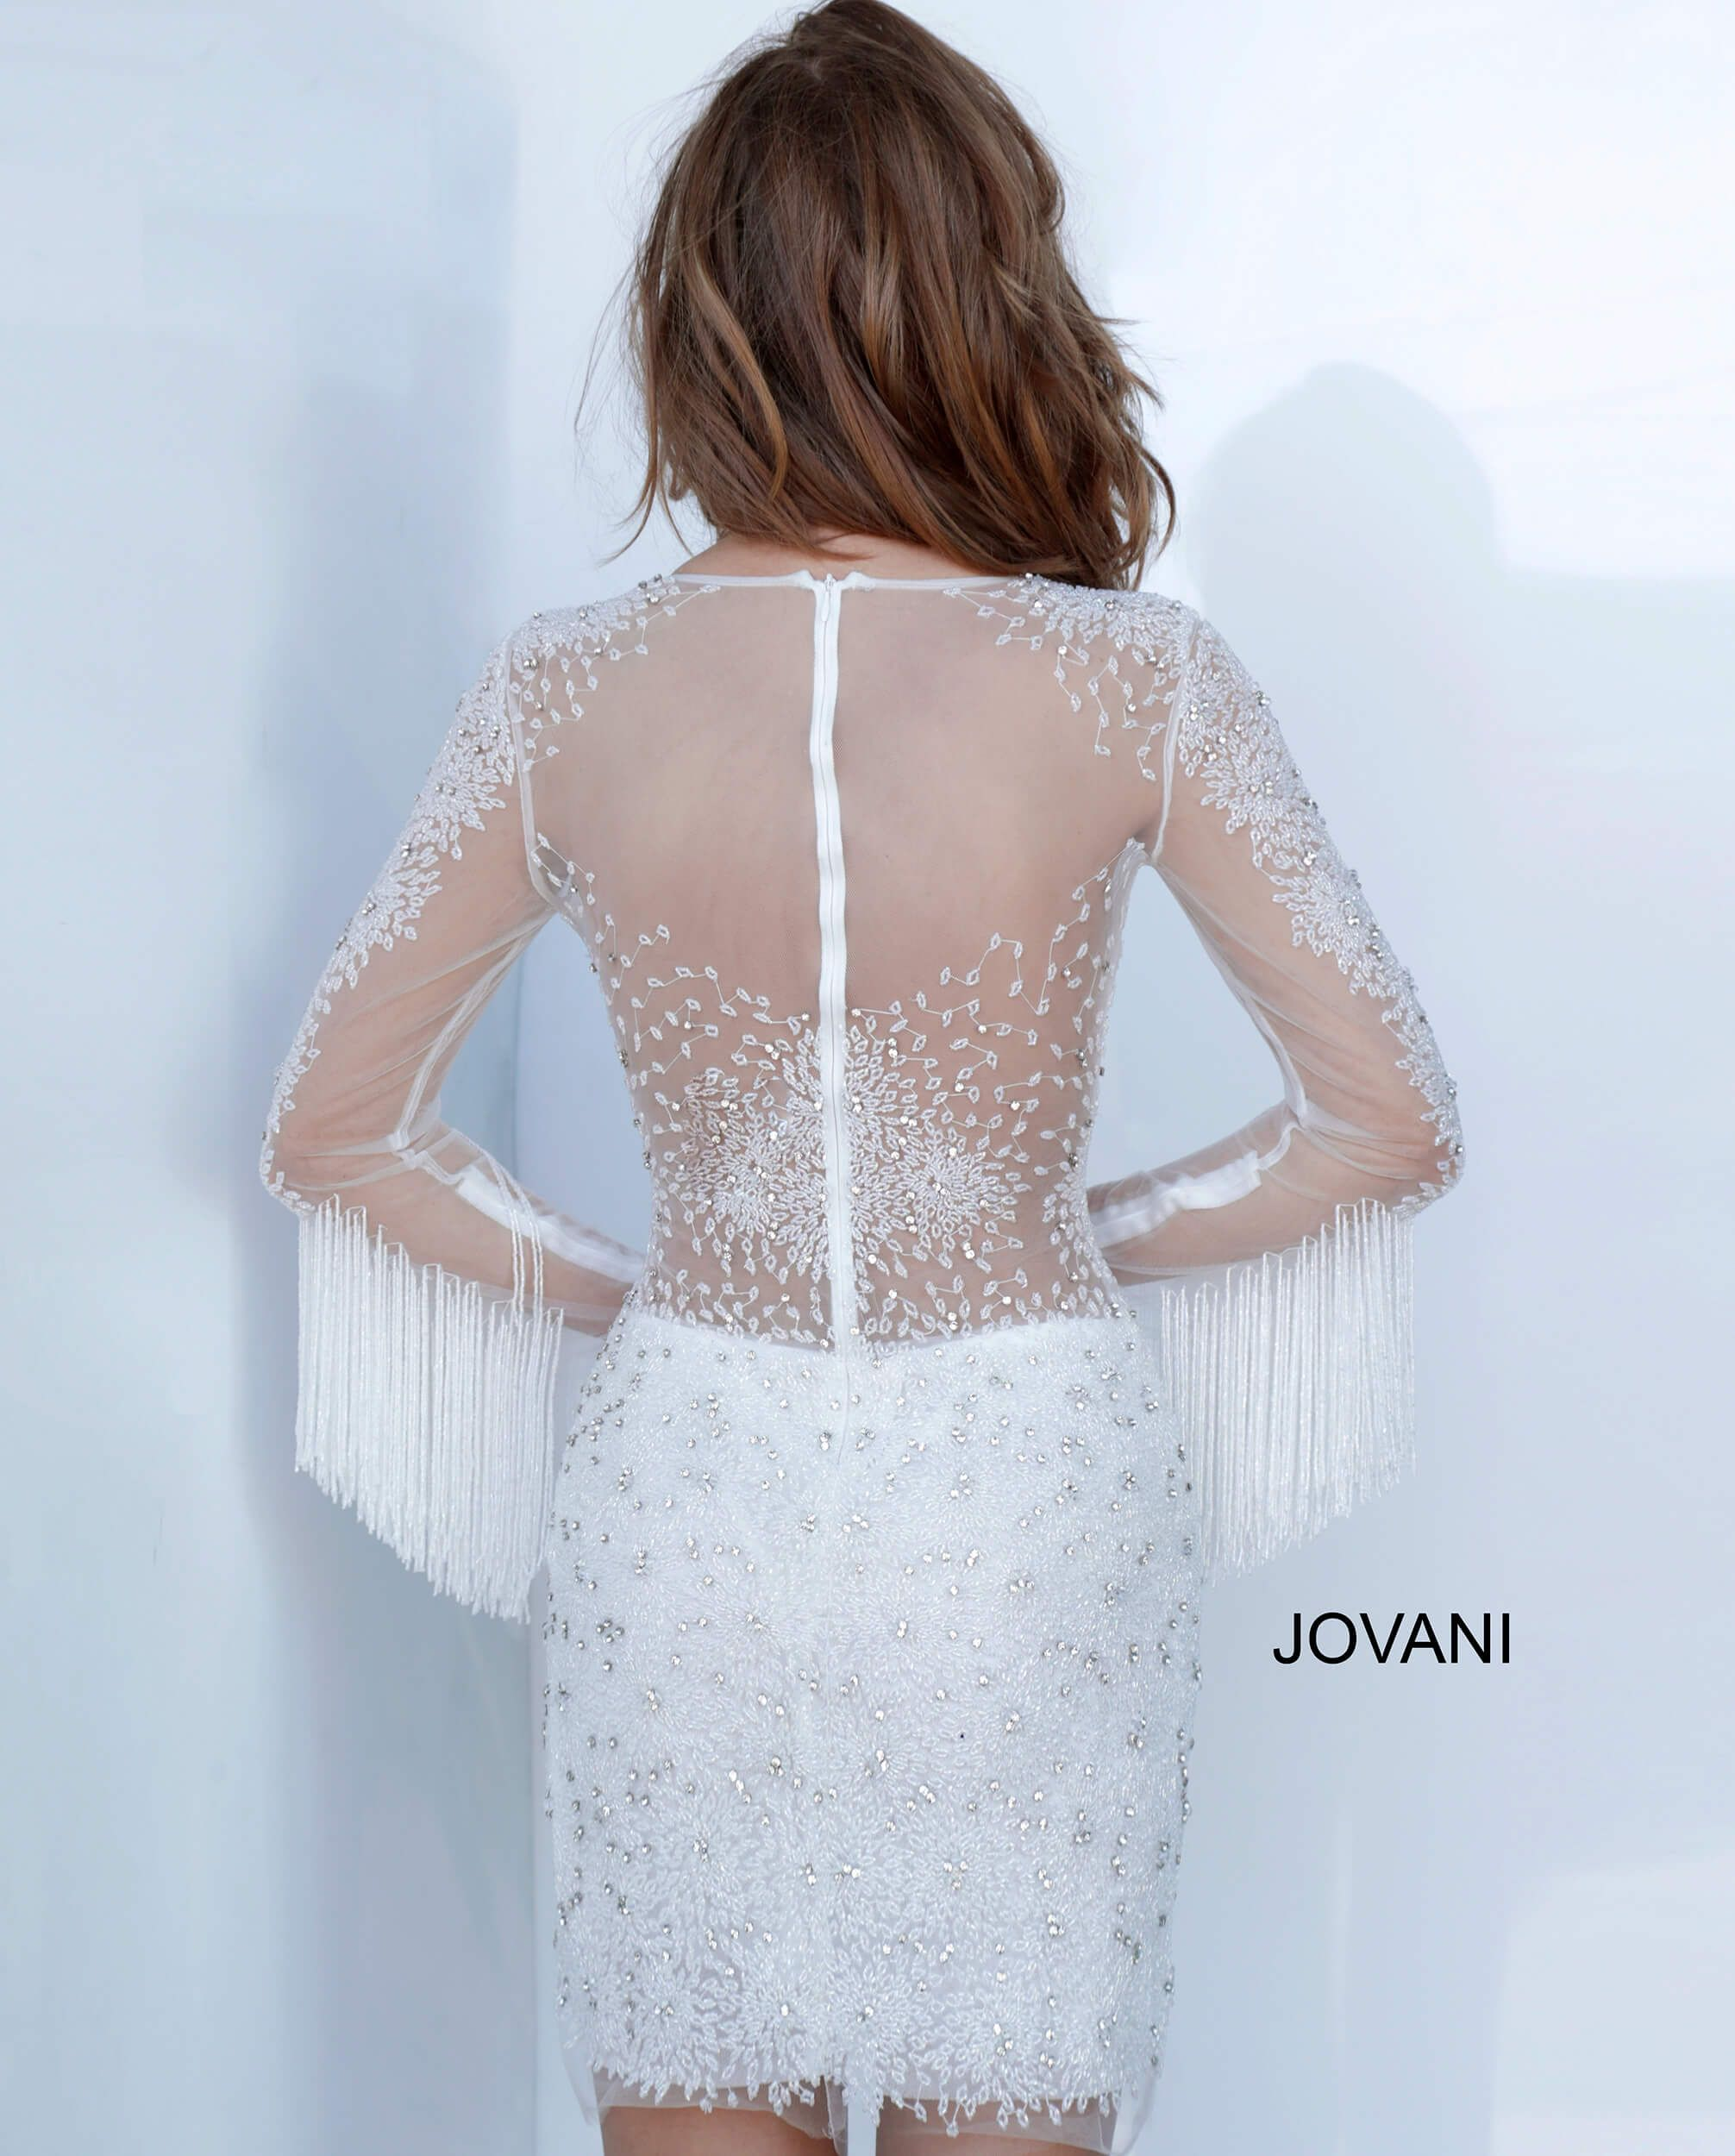 Jovani 3152 Off White Short Beaded Sheer Cocktail Dr Long Cocktail Dress Long Evening Gowns Illusion Dress [ 2500 x 2012 Pixel ]